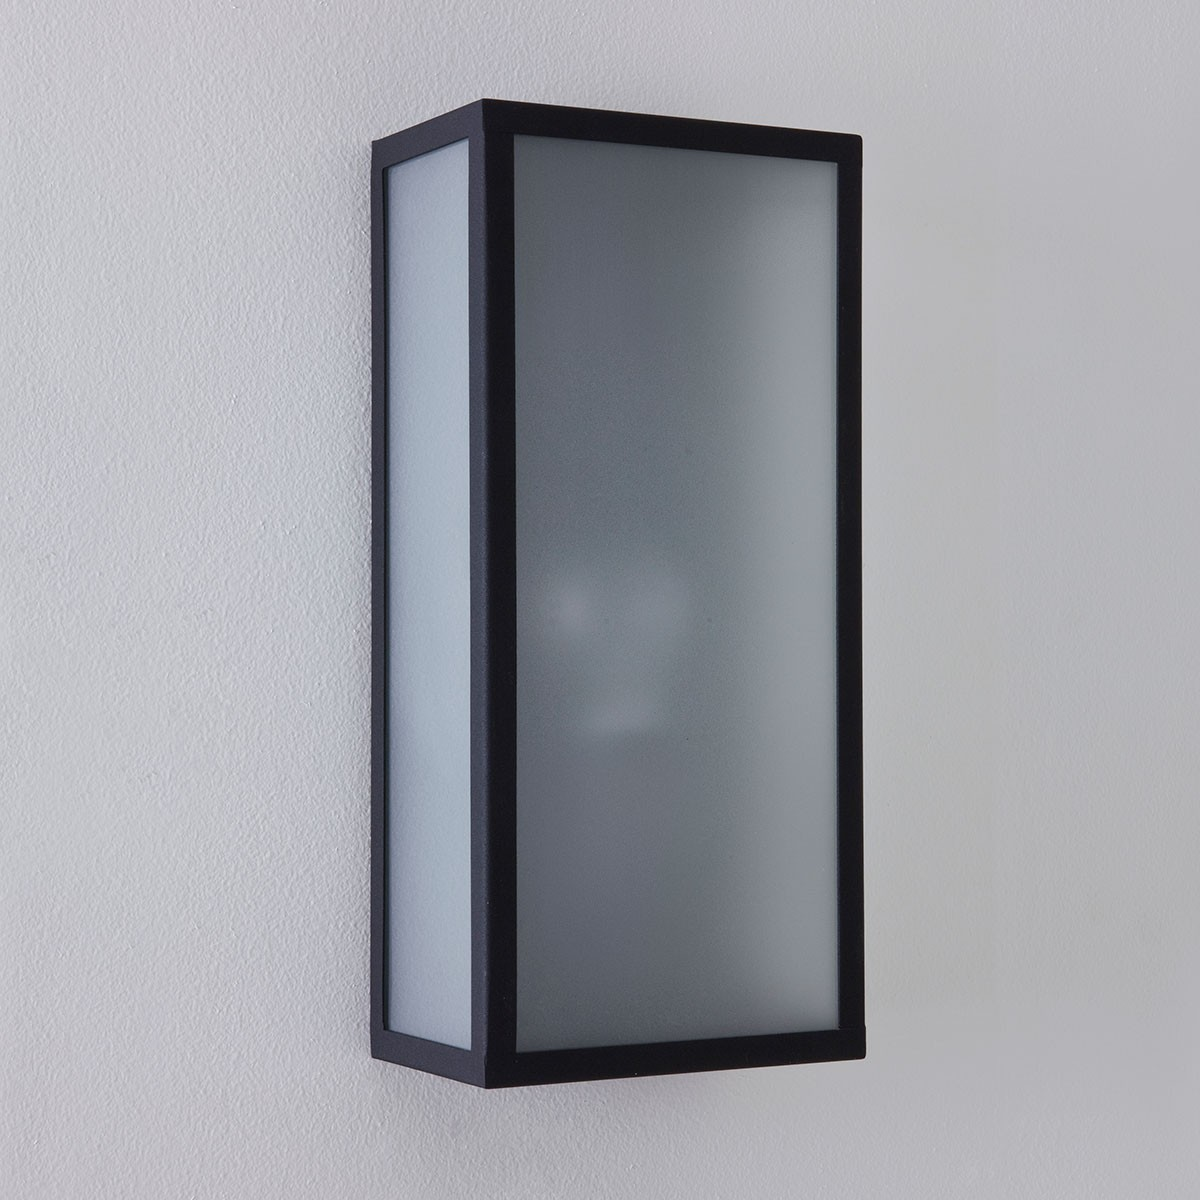 Wall Lights Frosted Glass : Astro Messina Black with Frosted Glass Outdoor Wall Light at UK Electrical Supplies.